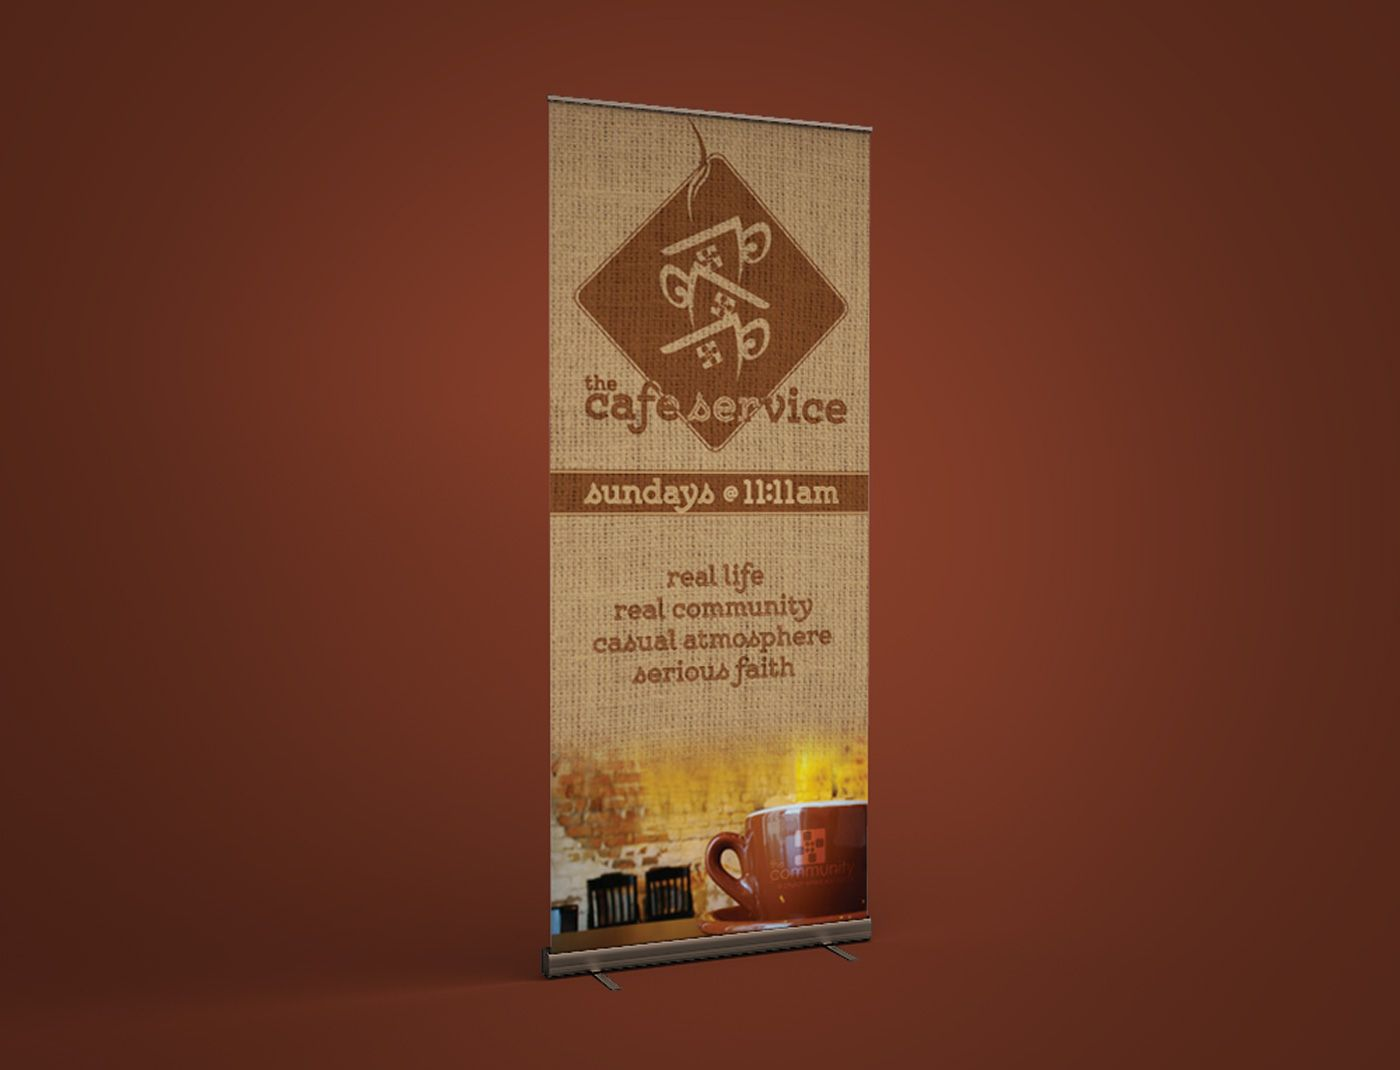 The Community — Café Service Logo & Banner